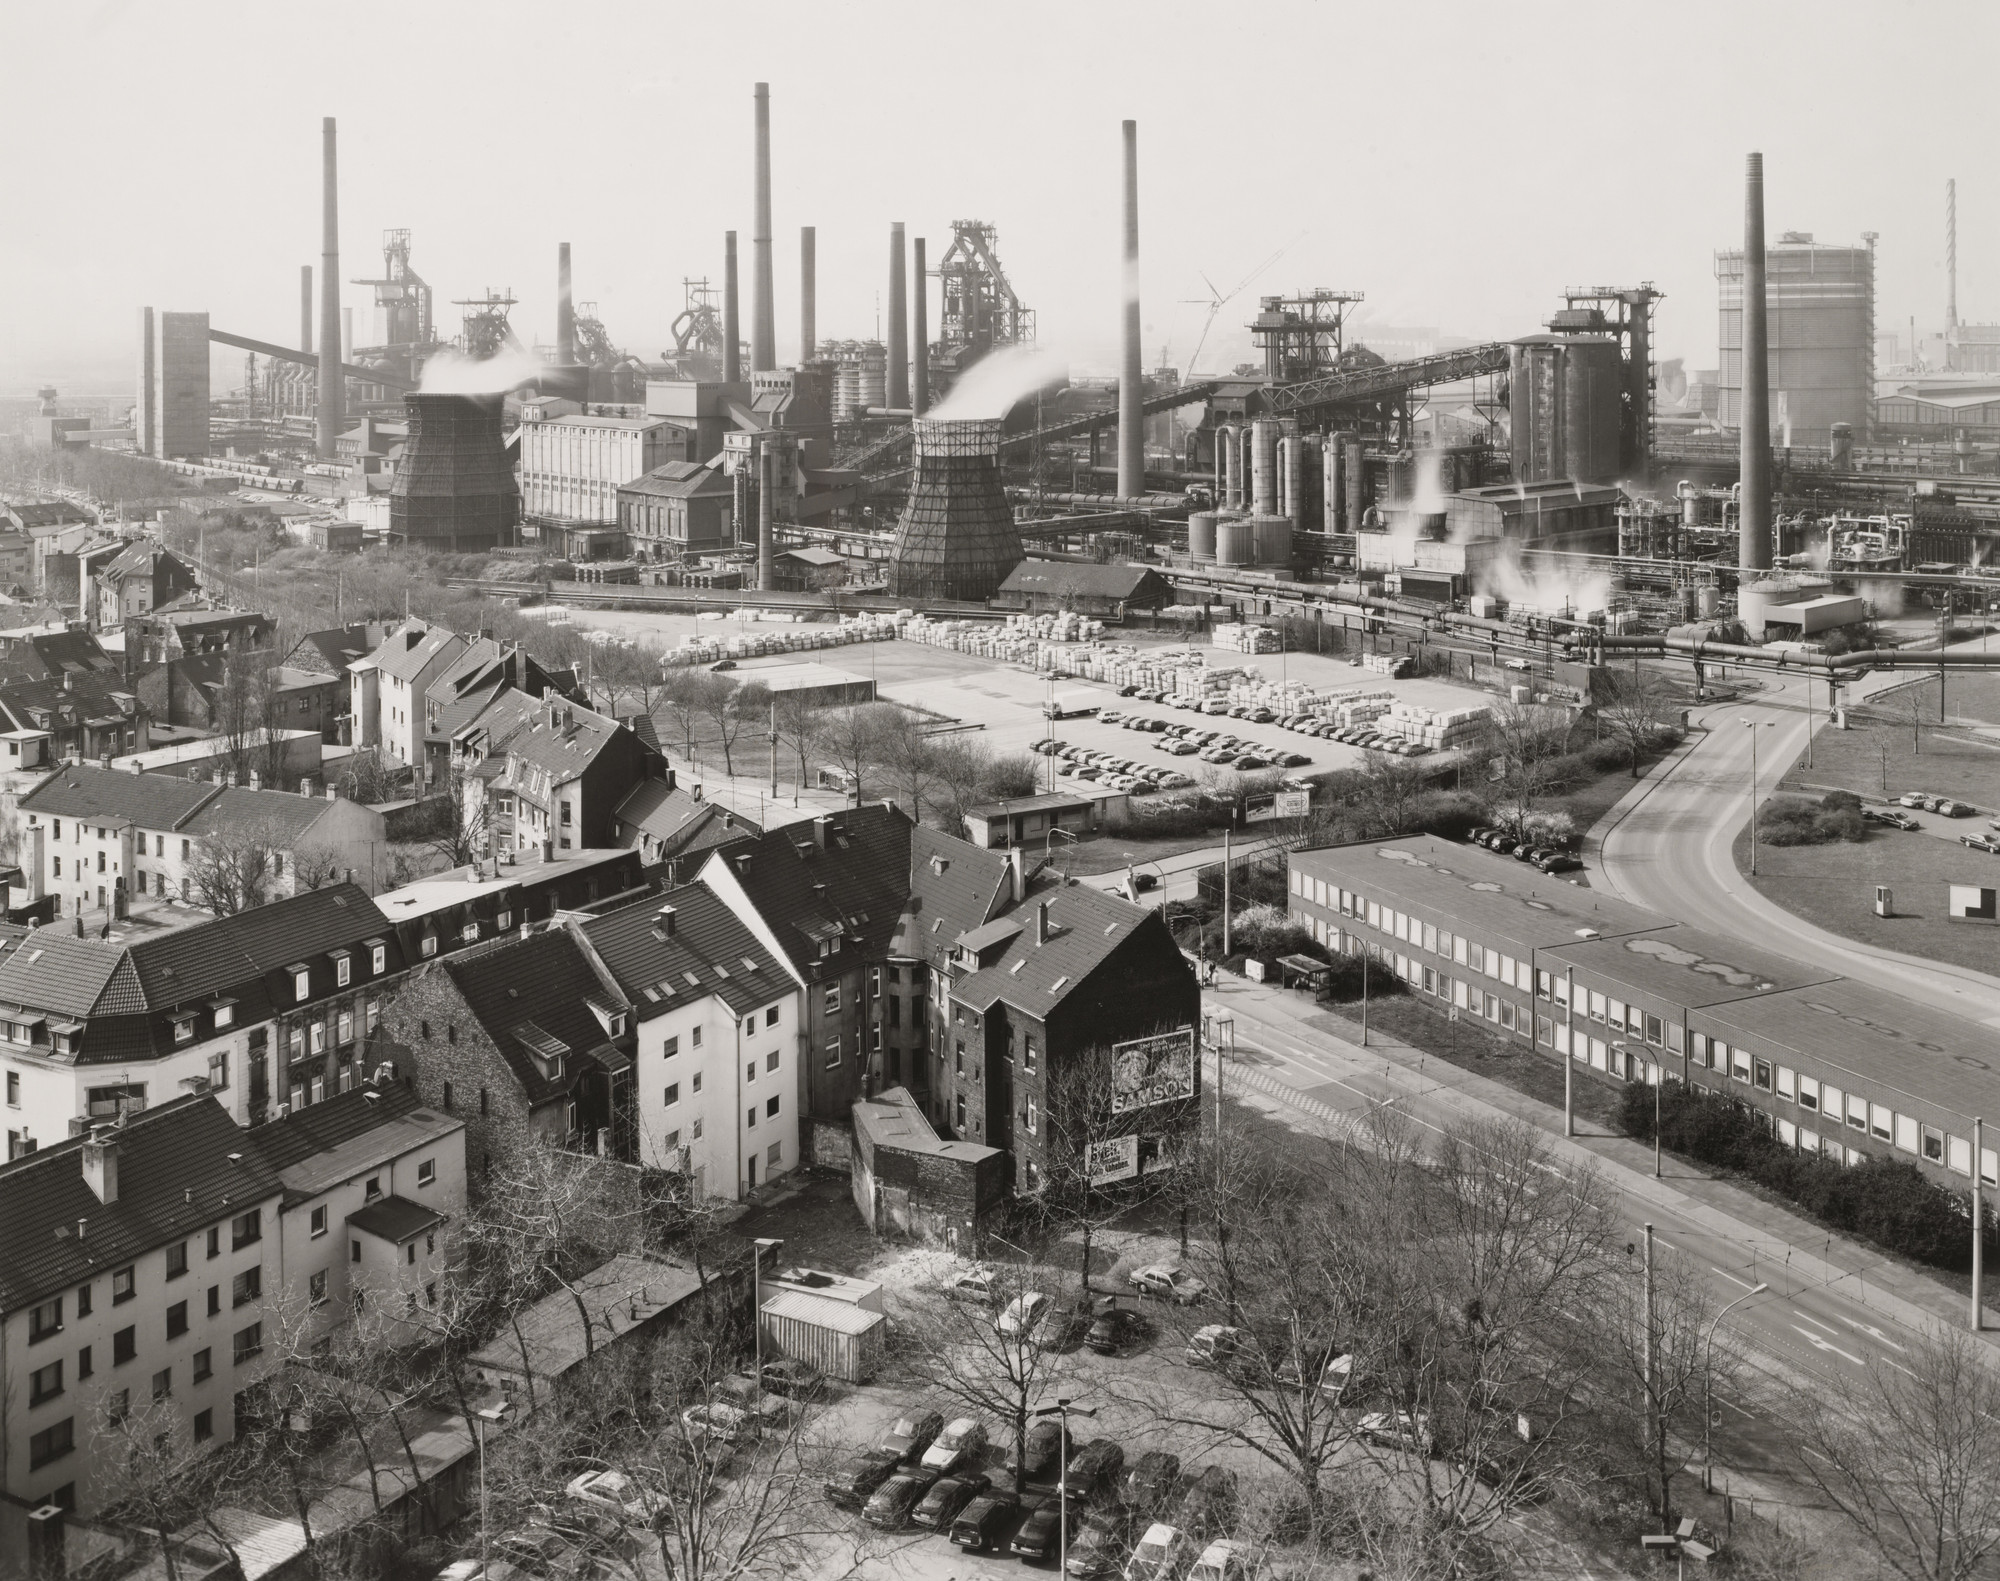 Bernd and Hilla Becher. Duisburg-Bruckhausen, Ruhr Region, Germany. 1999. Gelatin silver print, 19 5⁄16 × 24″ (49.1 × 60.9 cm). Horace W. Goldsmith Fund through Robert B. Menschel. © 2016 Hilla Becher